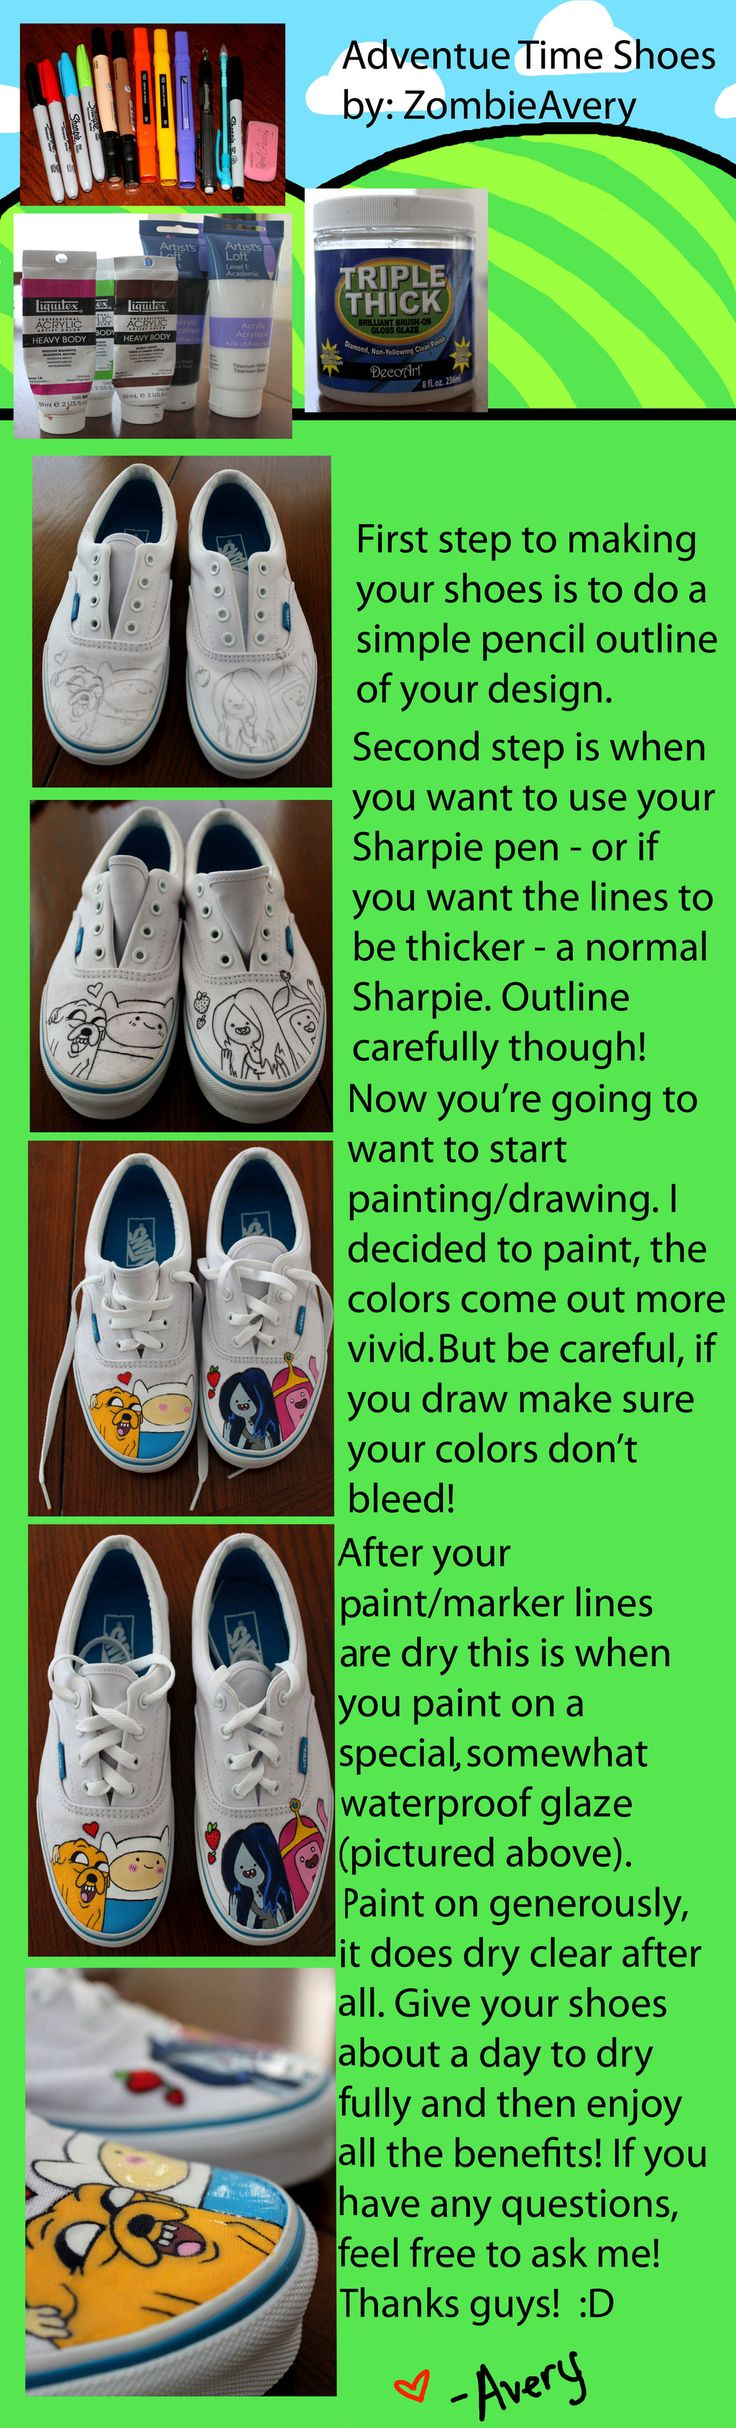 Adventure Time Shoe Tutorial by ~ZombieAvery   SO.HELP.FUL. this rocks!!!!!!!!!!!!!!!!!!!!!!!!!!!!!!!!!!!!!!!!!!!!!!!!!!!!!!!!!!!!!!!!!!!!!!!!!!!!!!!!!!!!!!!!!!!!!!!!!!!!!!!!!!!!!!!!!!!!!!!!!!!!!!